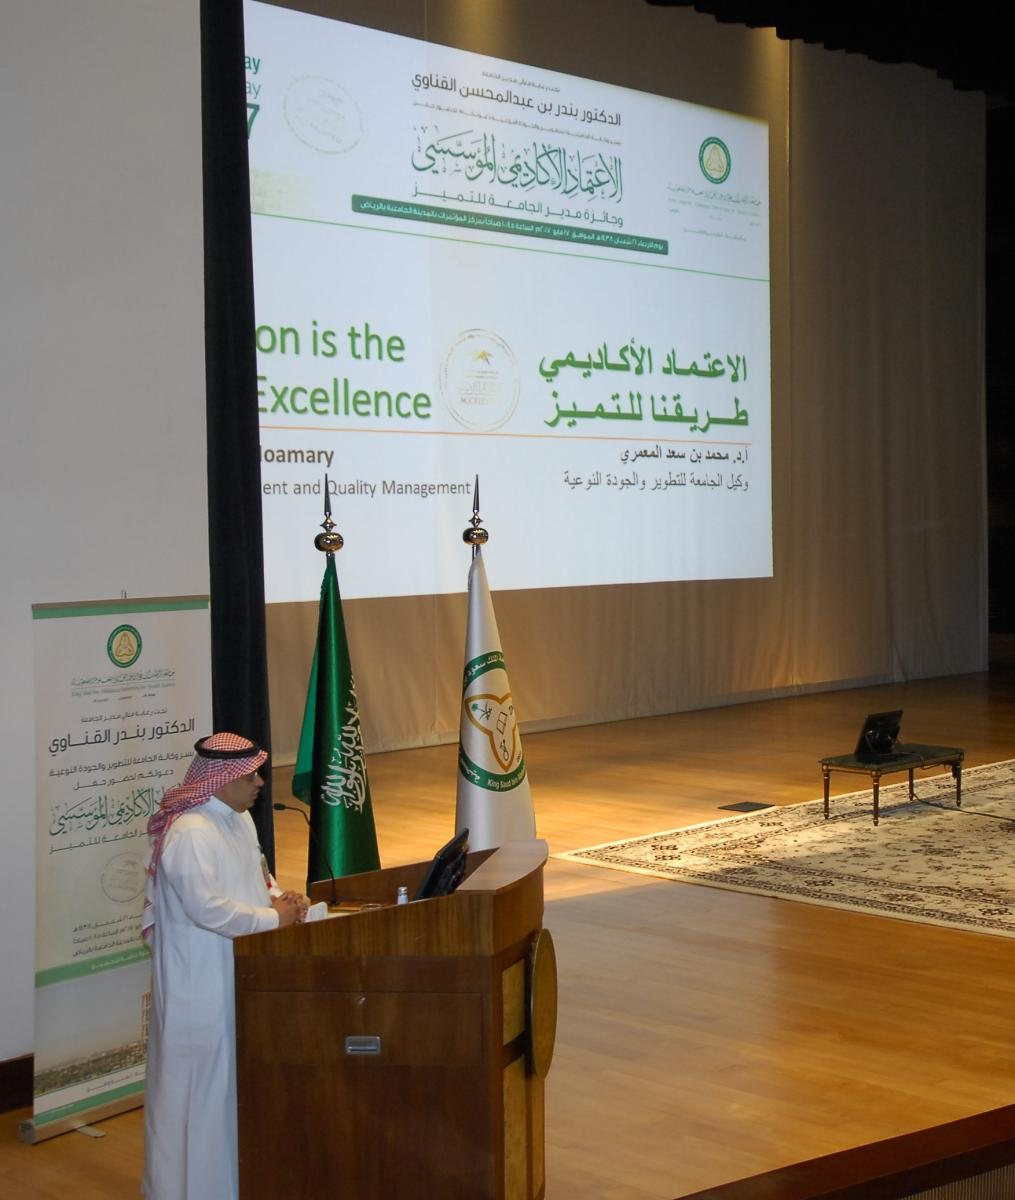 KSAU-HS Institutional Accreditation Celebration & President's Awards for Academic Excellence (2016-2017)